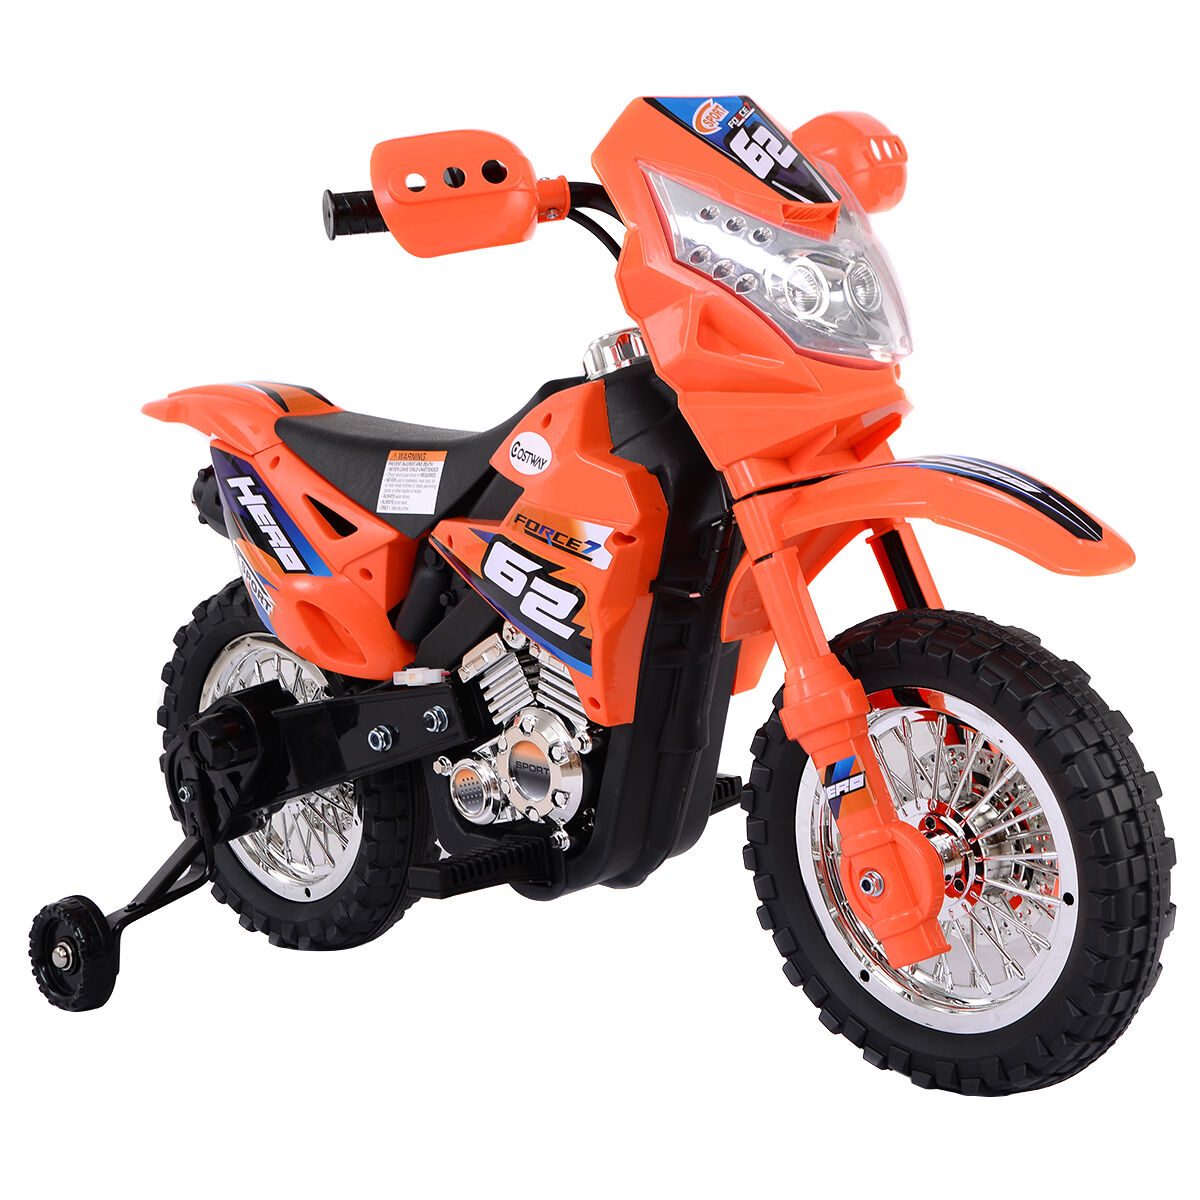 Uncategorized Kids Motorcycle costzon kids ride on motorcycle with training wheel 6v battery picture 1 of 7